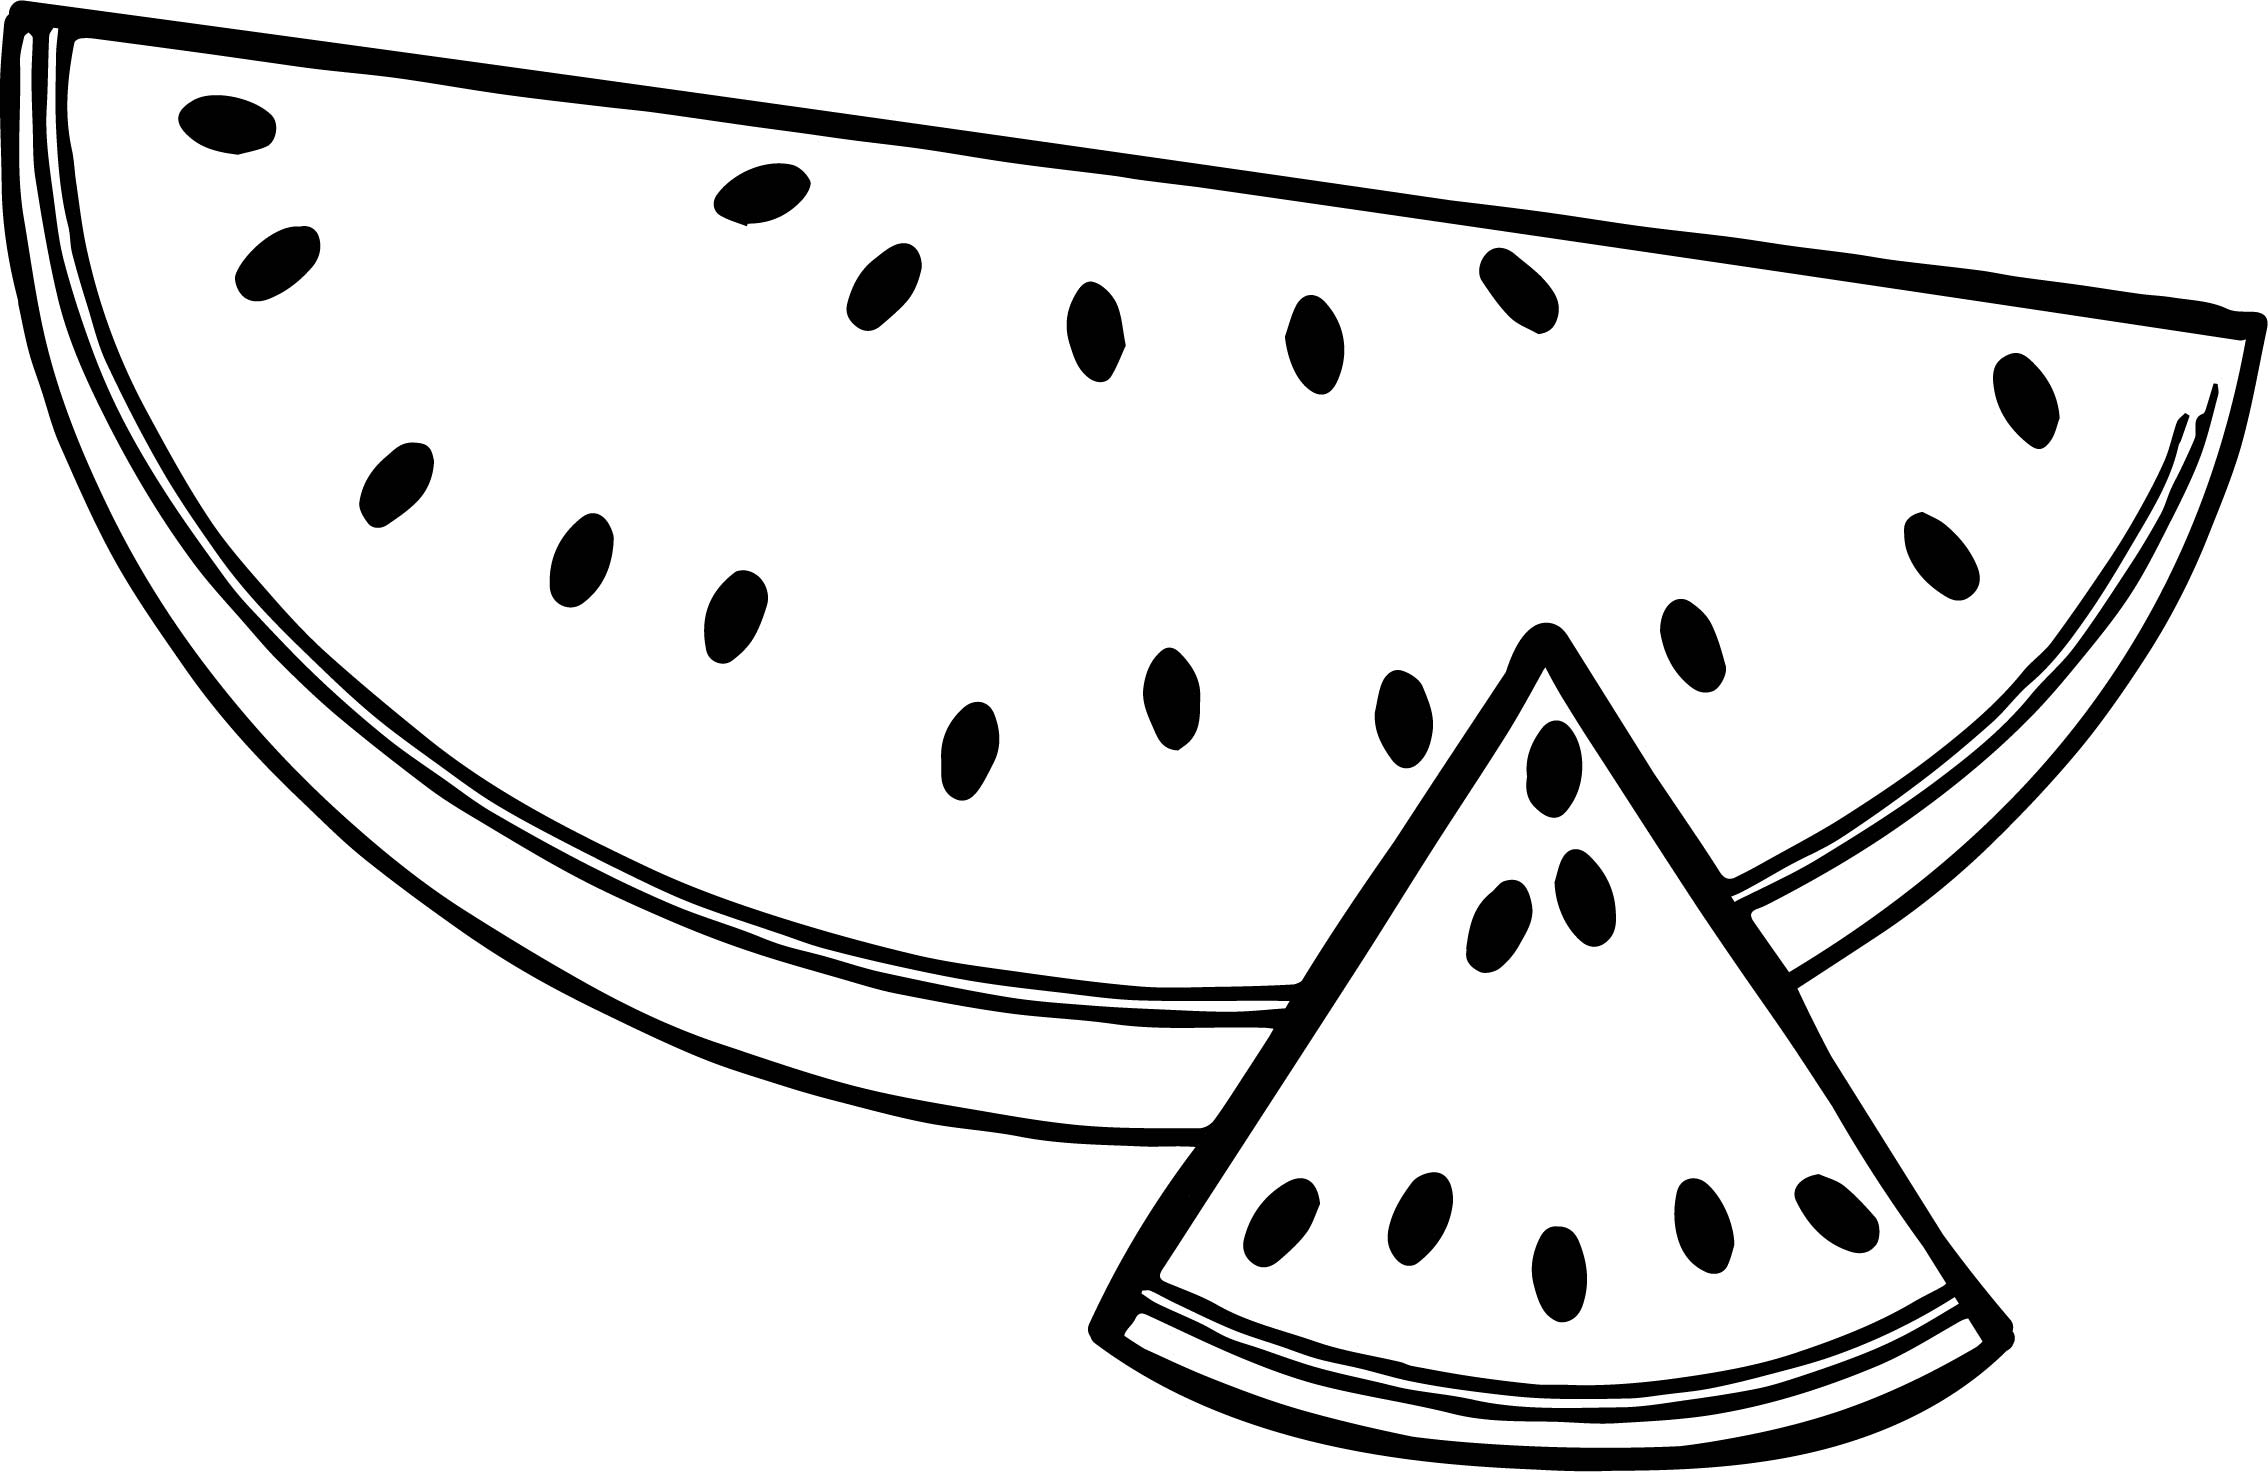 a sliced summer watermelon half and triangle coloring page - Slice Watermelon Coloring Page